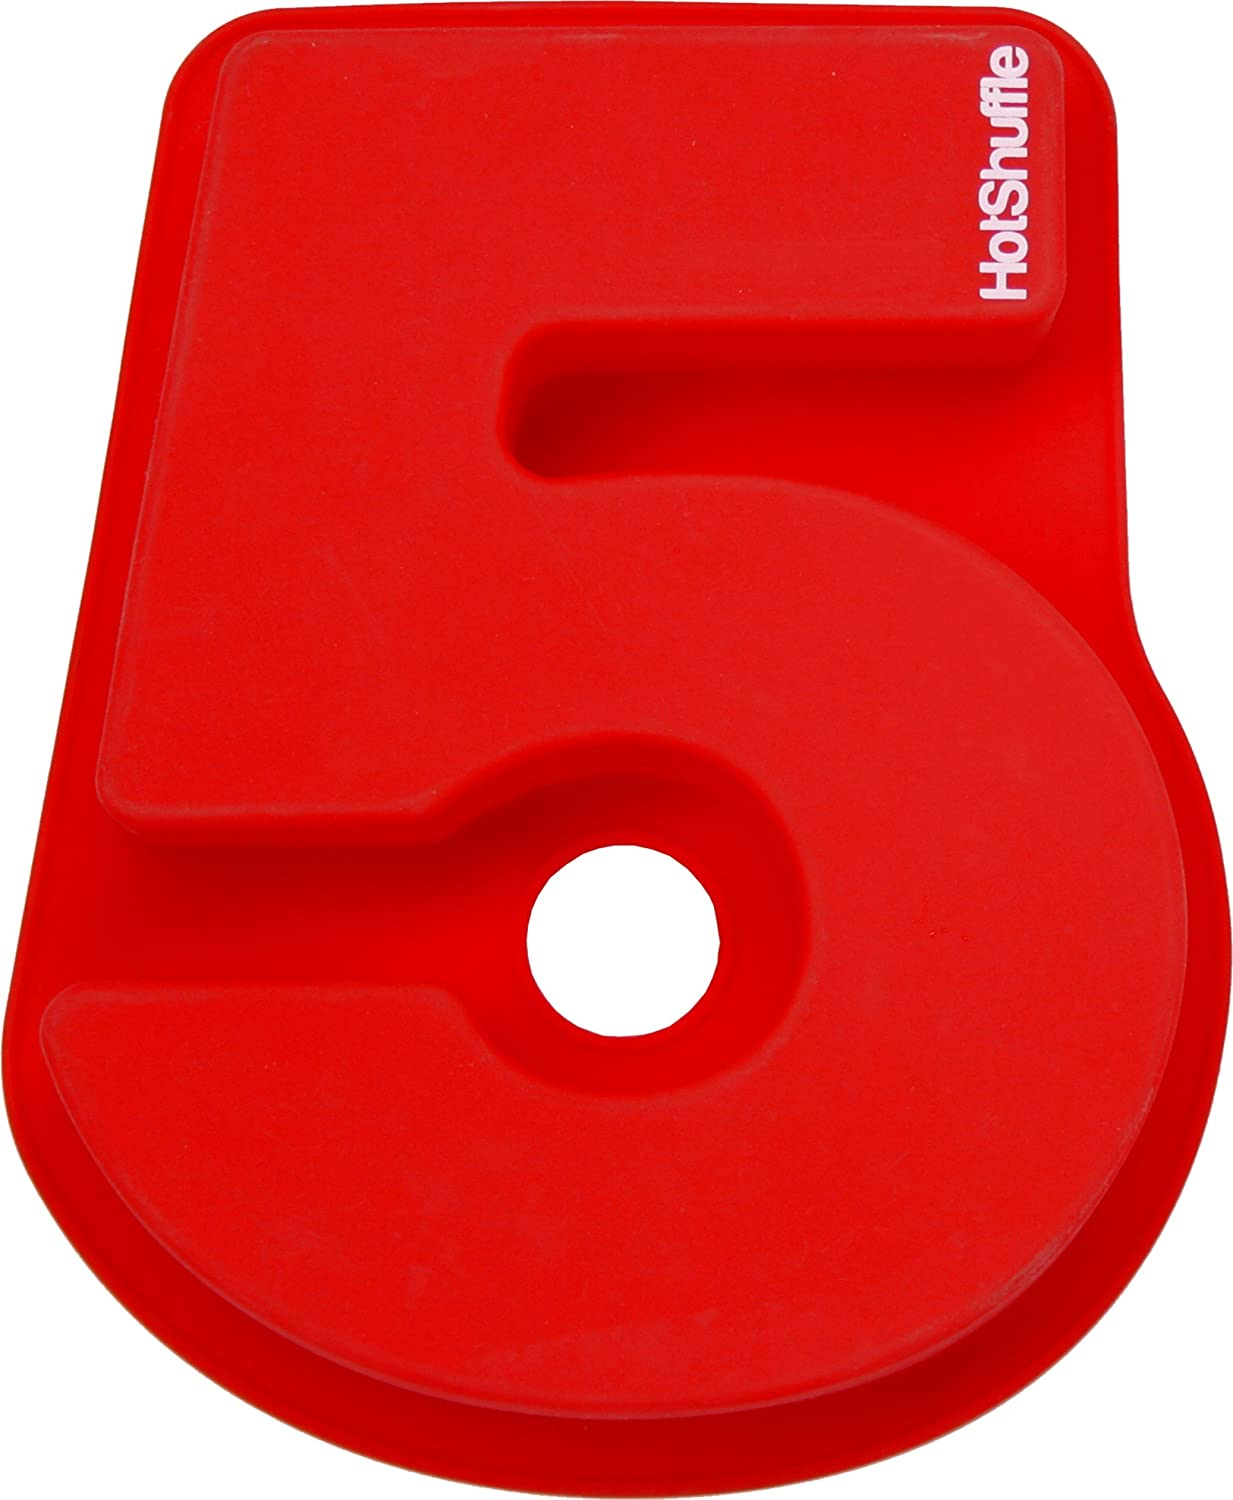 Amazon.com: Large Silicone Number Cake Mould Baking Birthday Anniversary 0 1 2 3 4 5 6 7 8 9: Kitchen & Dining